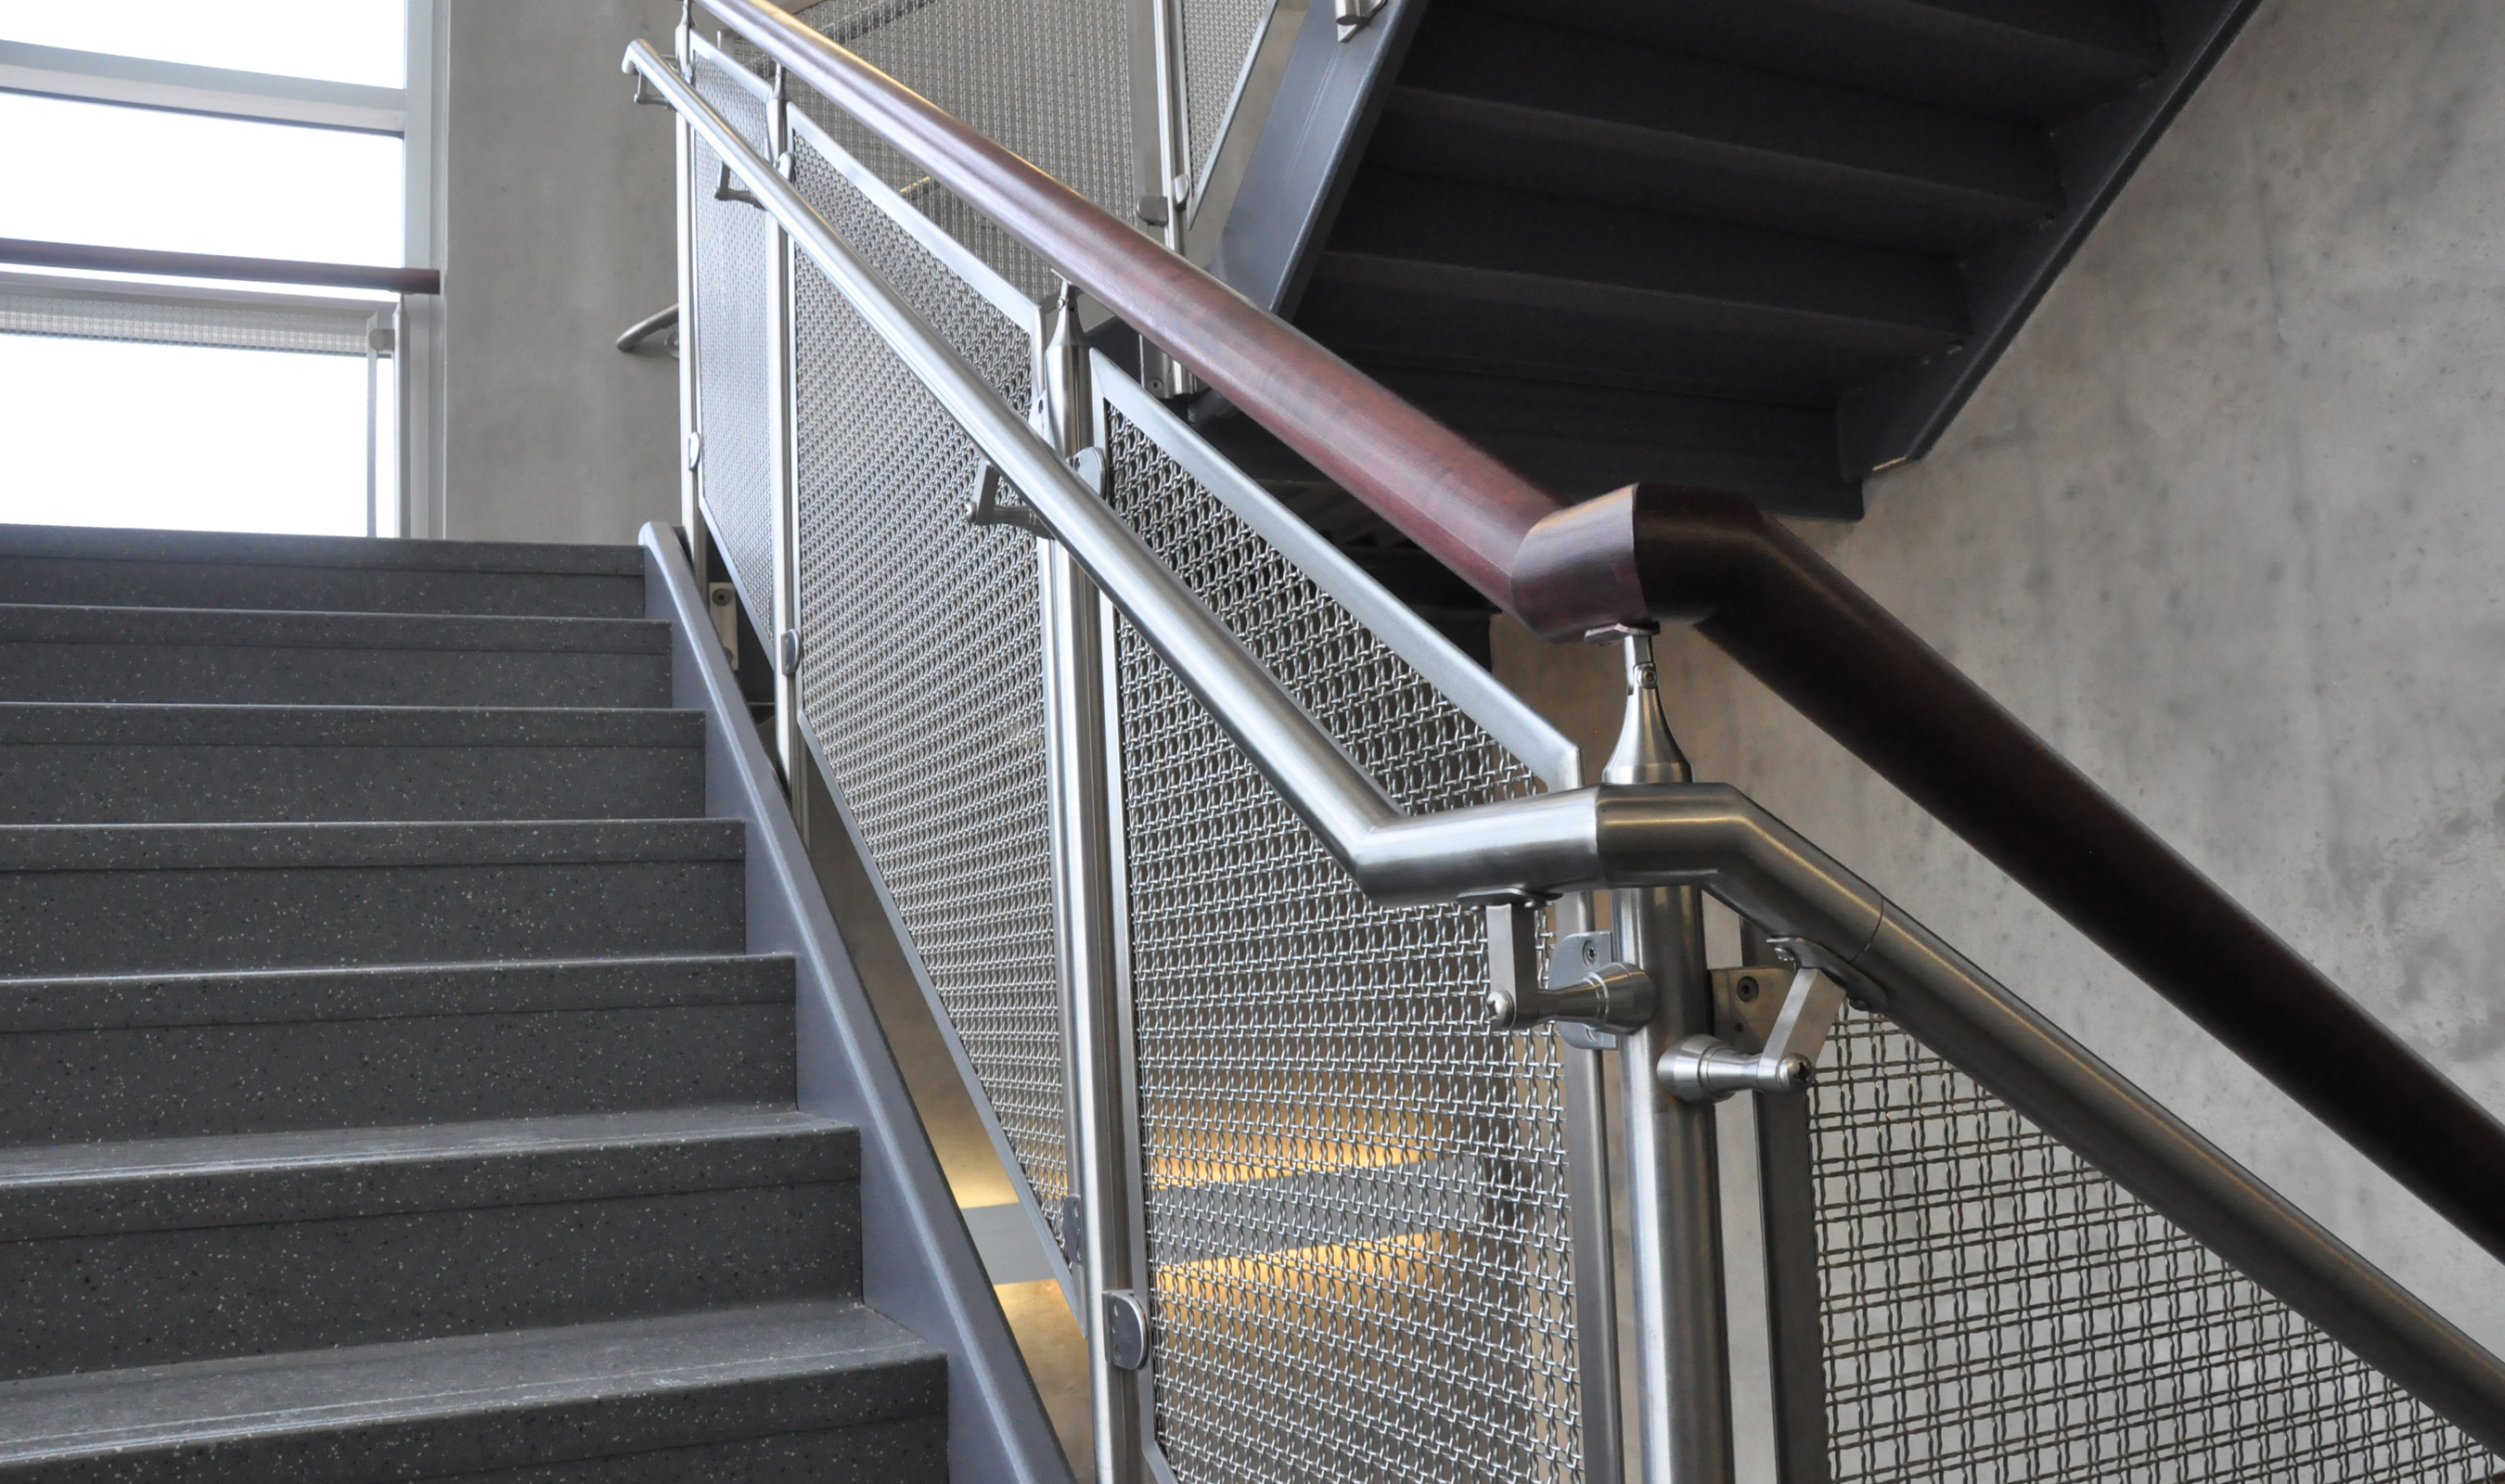 The openness of the stainless steel wire mesh railing infill panels keeps the space well lit by the outside light coming in.